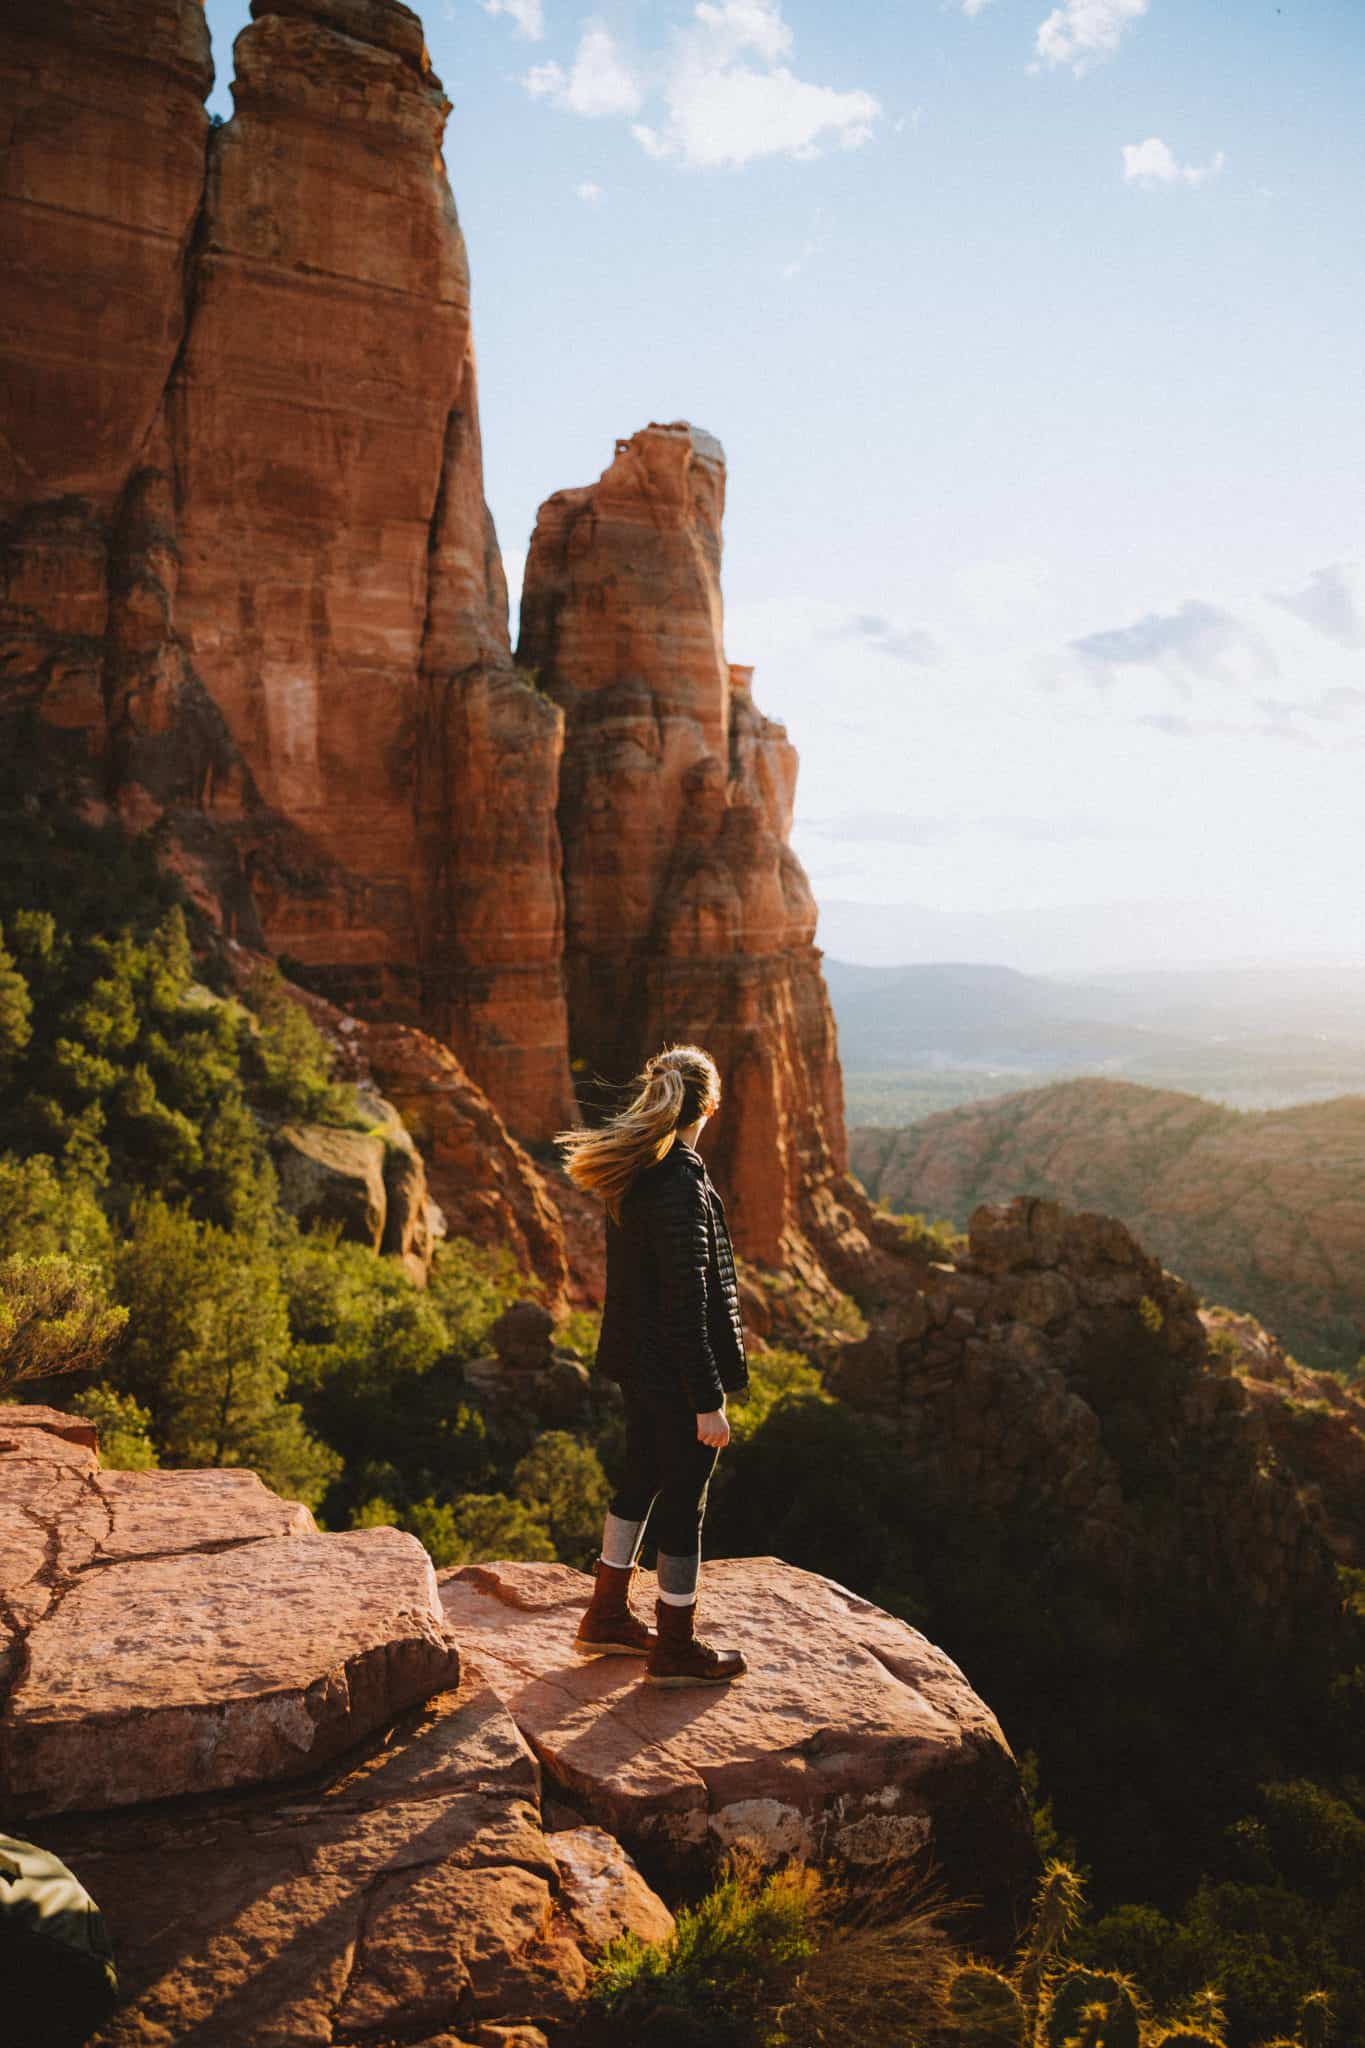 Hike Cathedral Rock Trail In Sedona During Sunset To Kick Off This Epic Outdoor Season